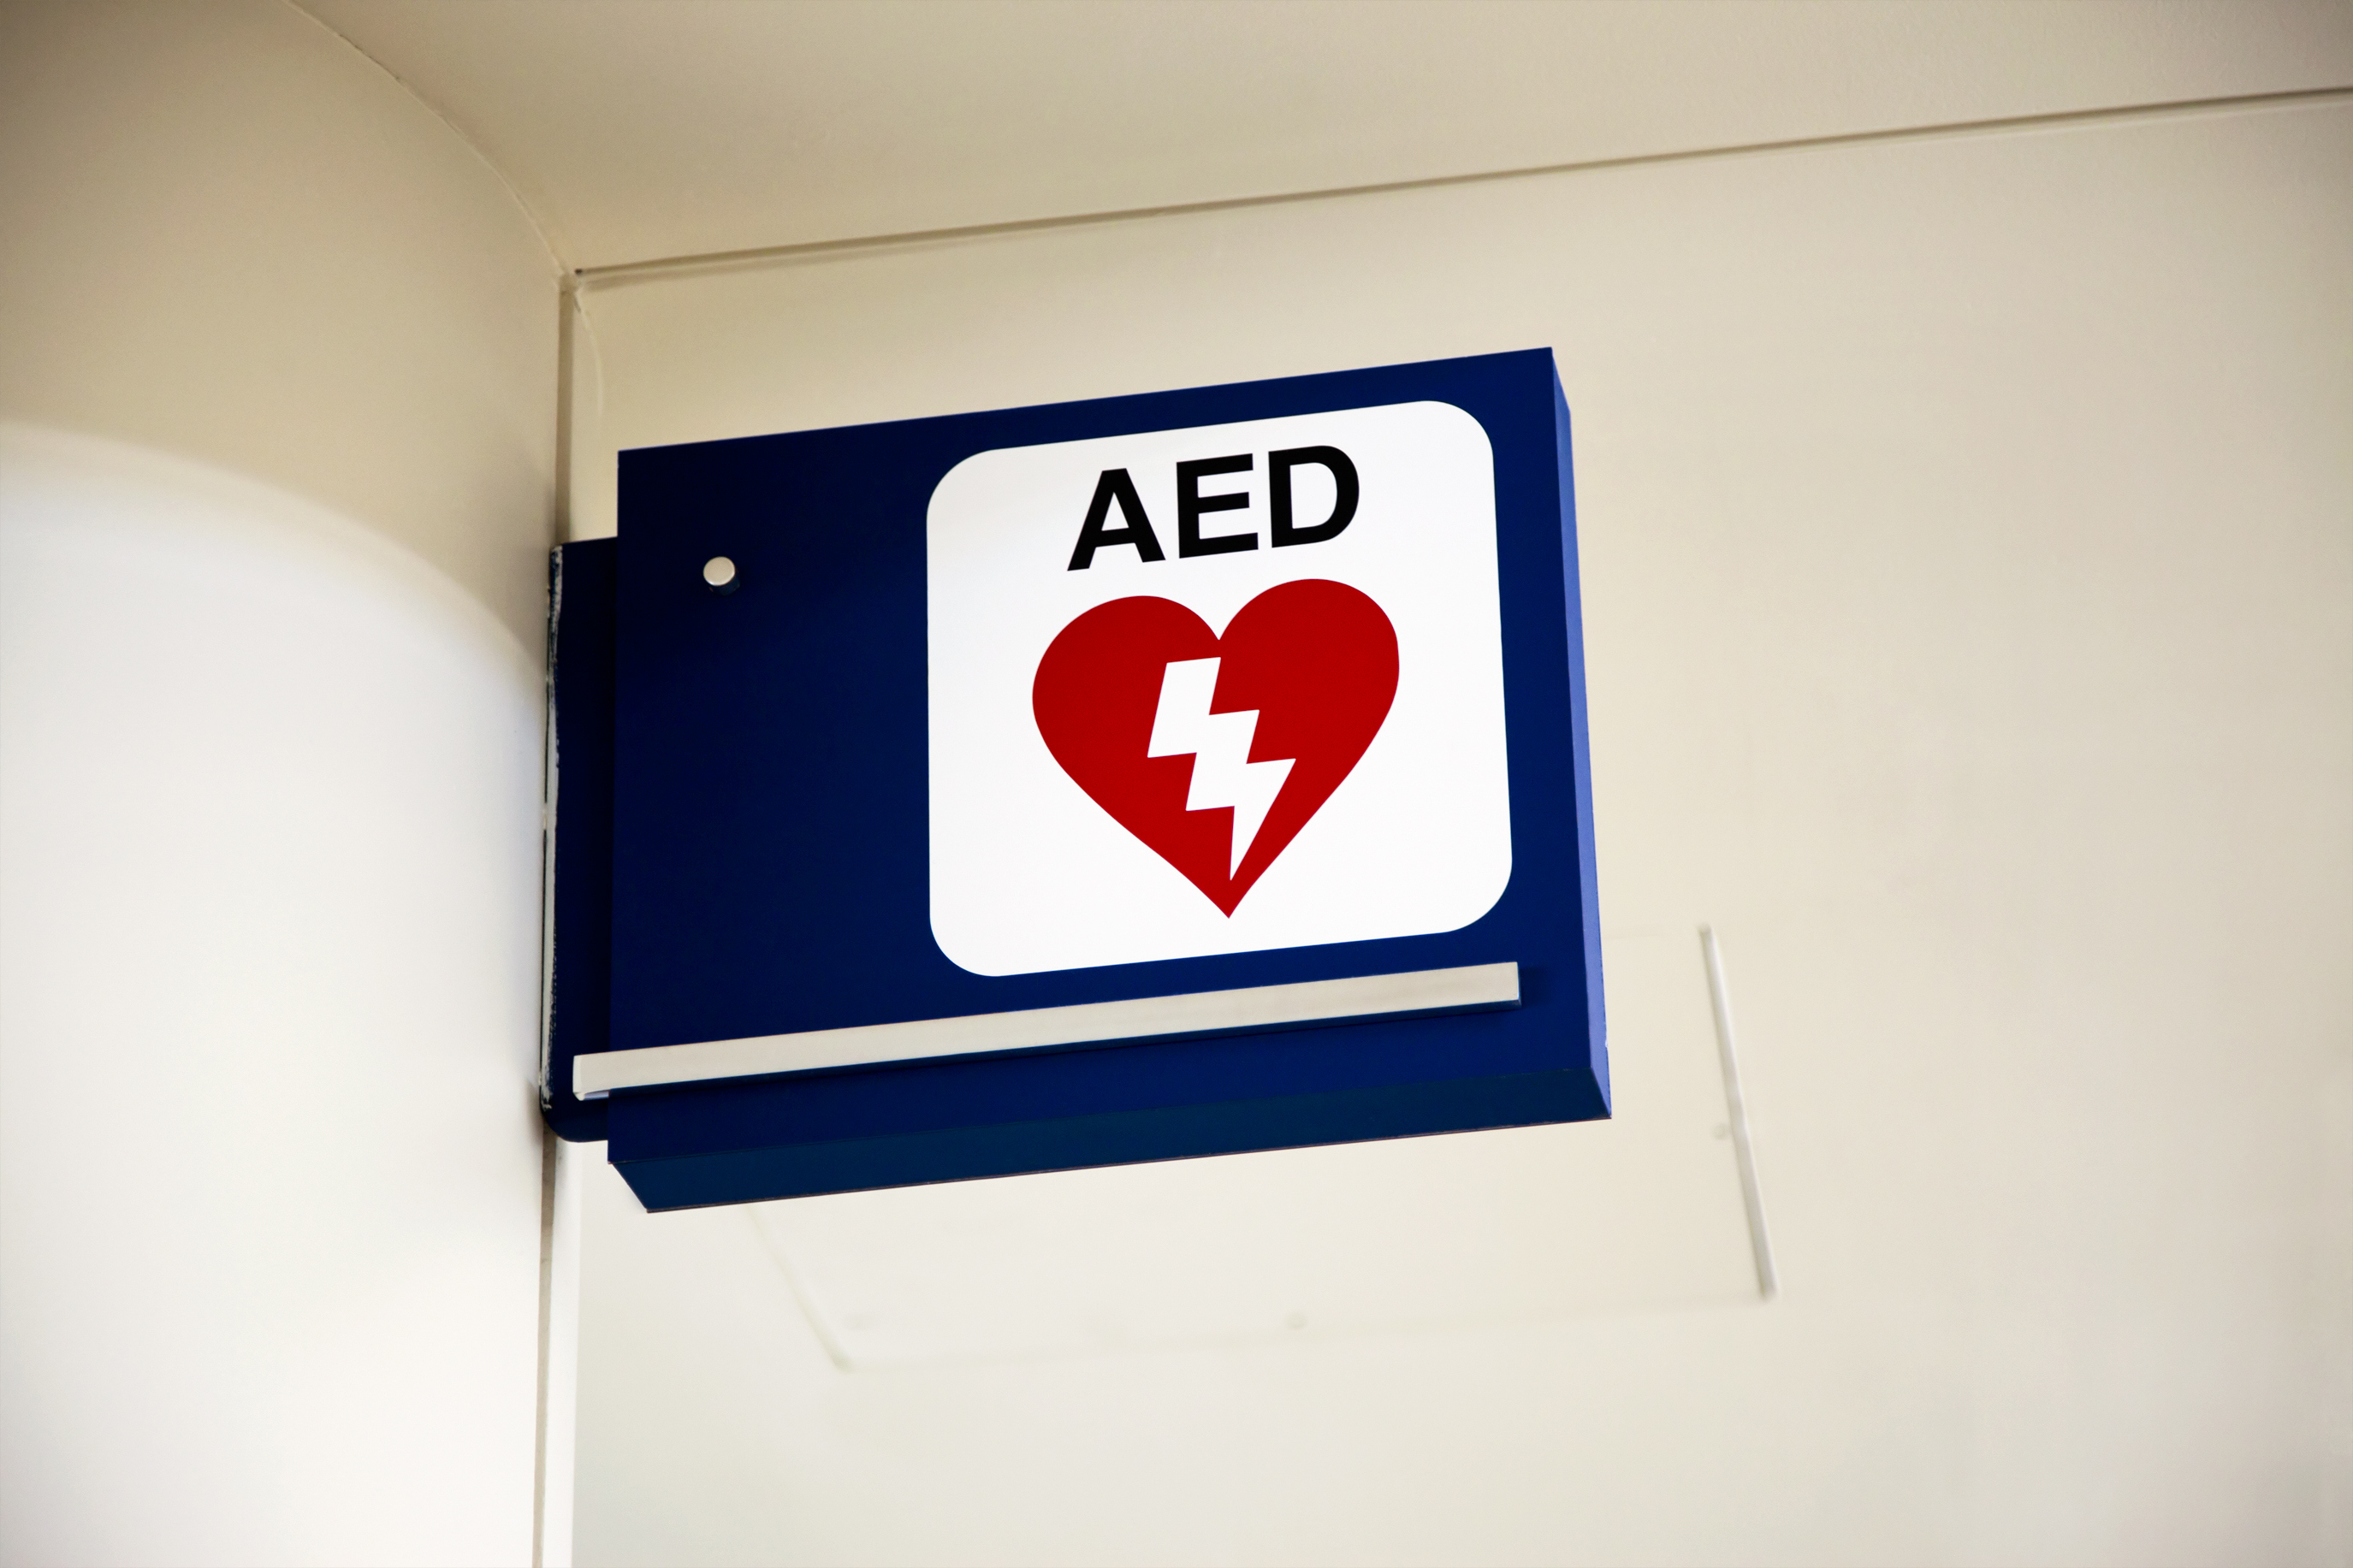 An emergency AED Automated External Defibrillator sign mounted to a wall.